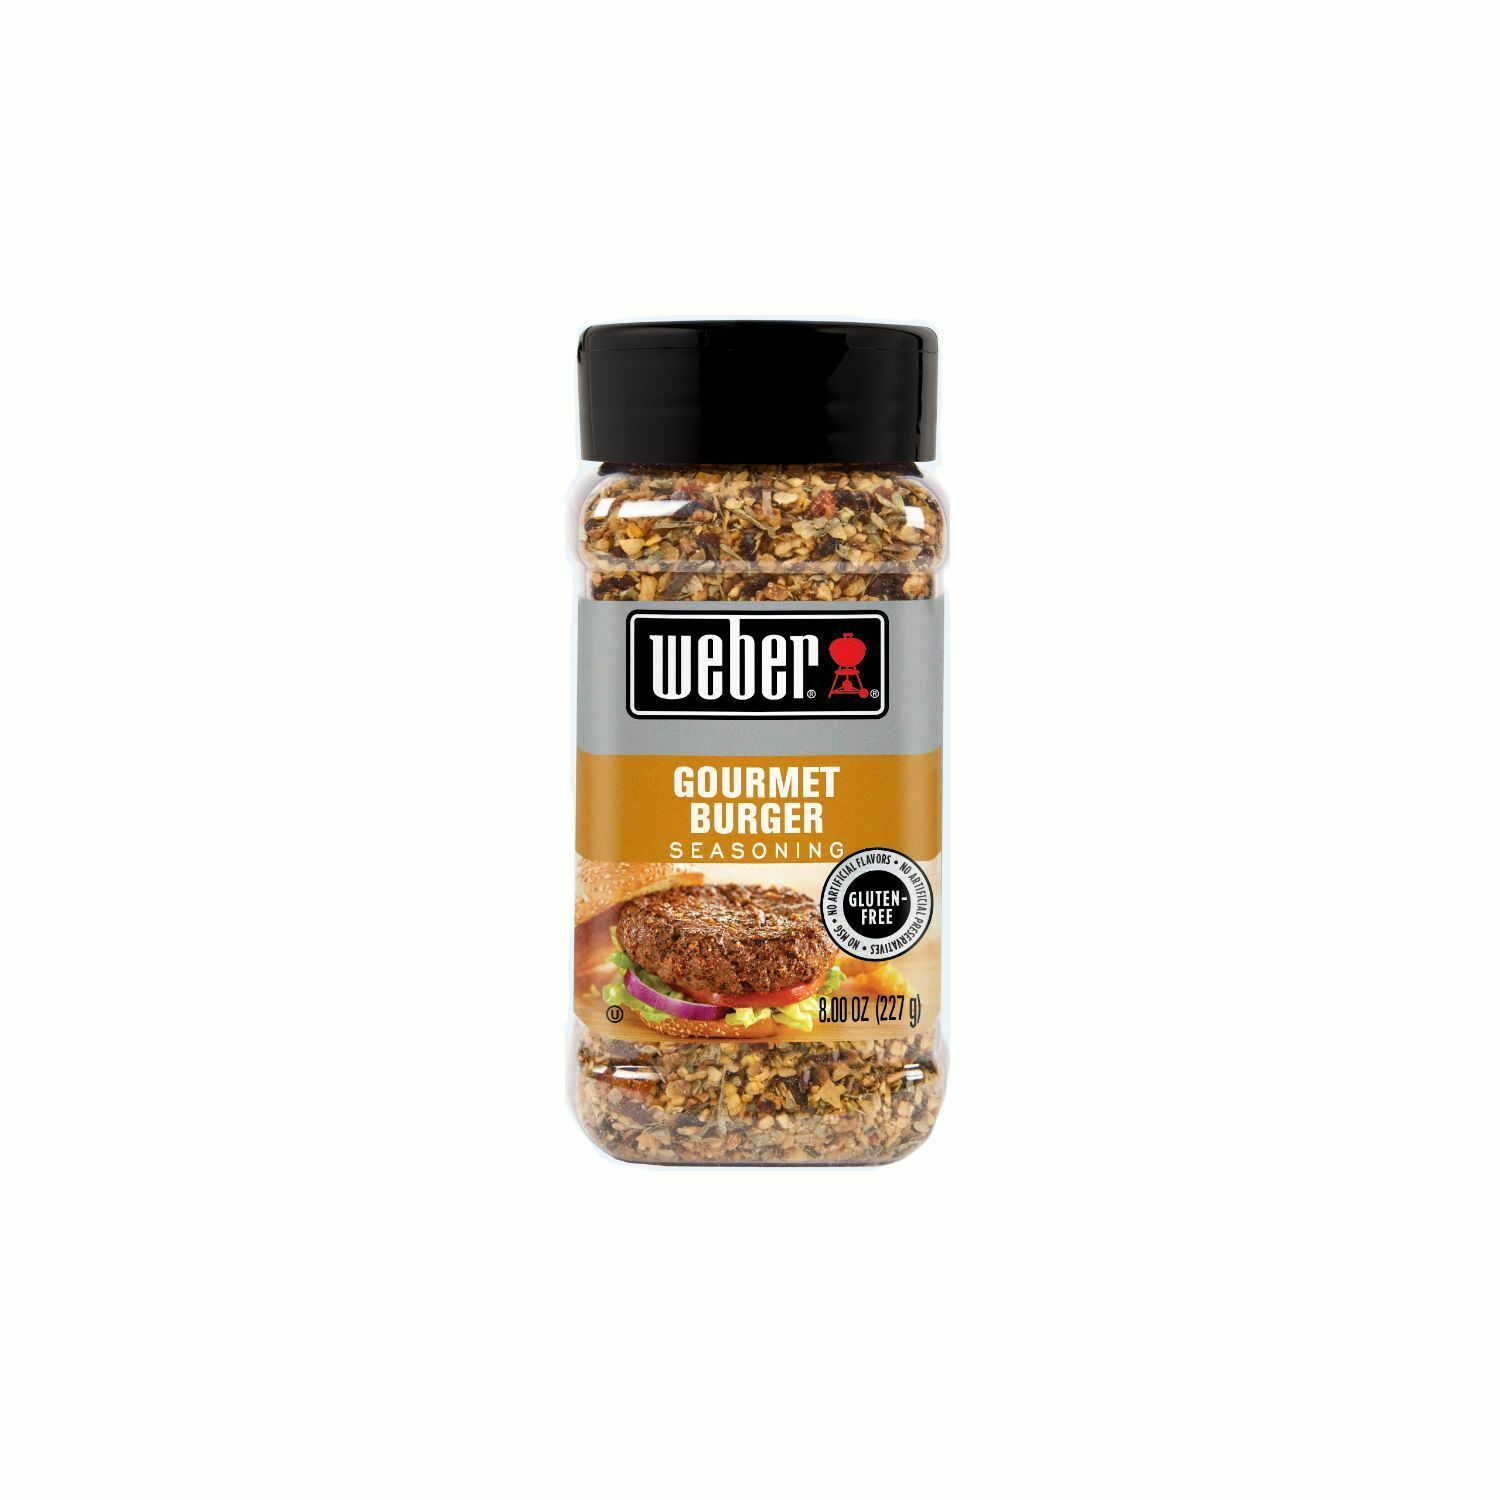 Weber Gourmet Burger Seasoning (8 oz.) - $11.87